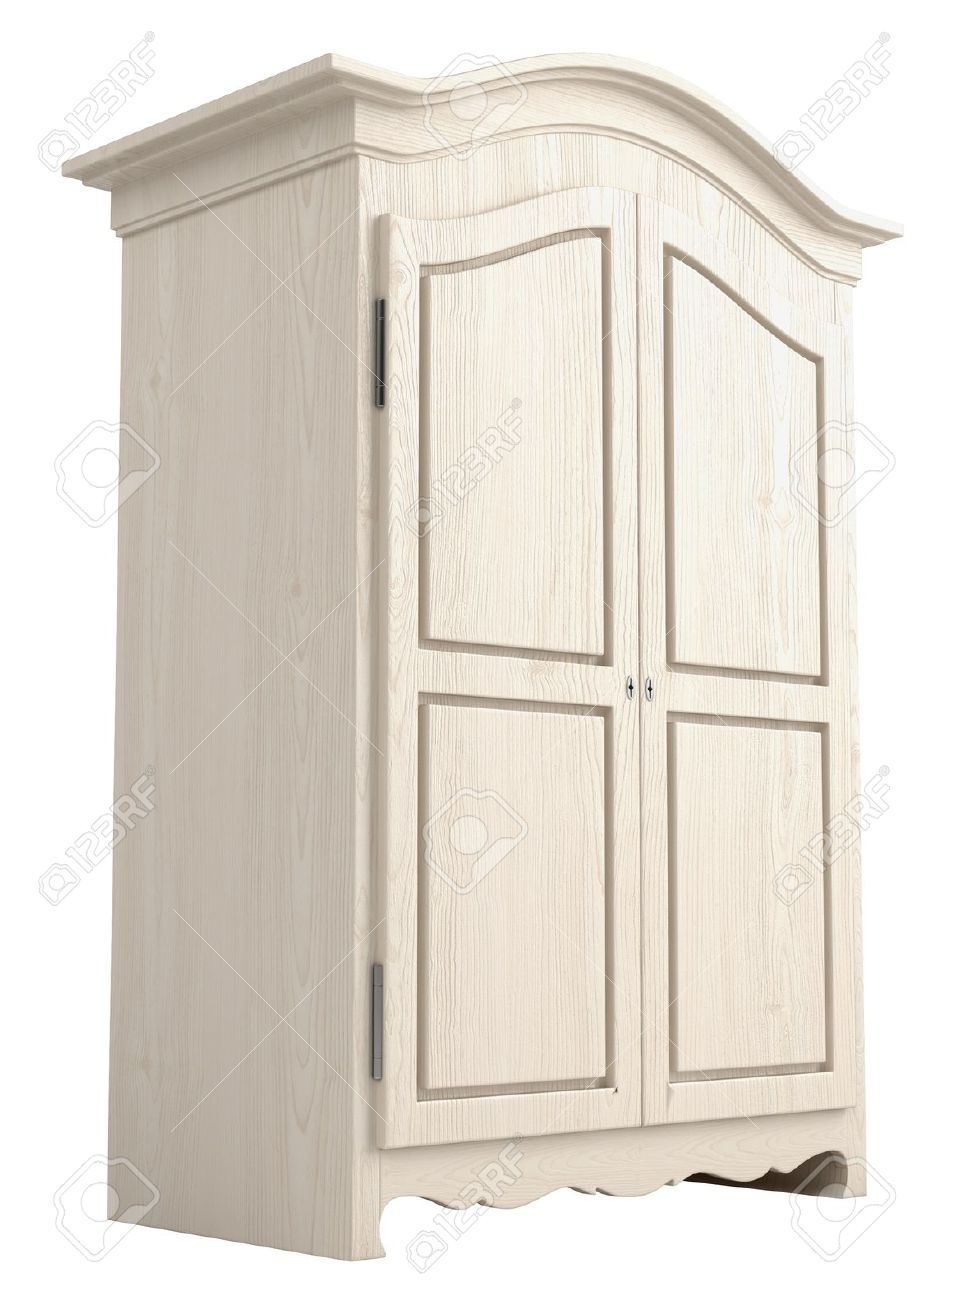 Rustic White Painted Wooden Cupboard With A Gable Top Isolated